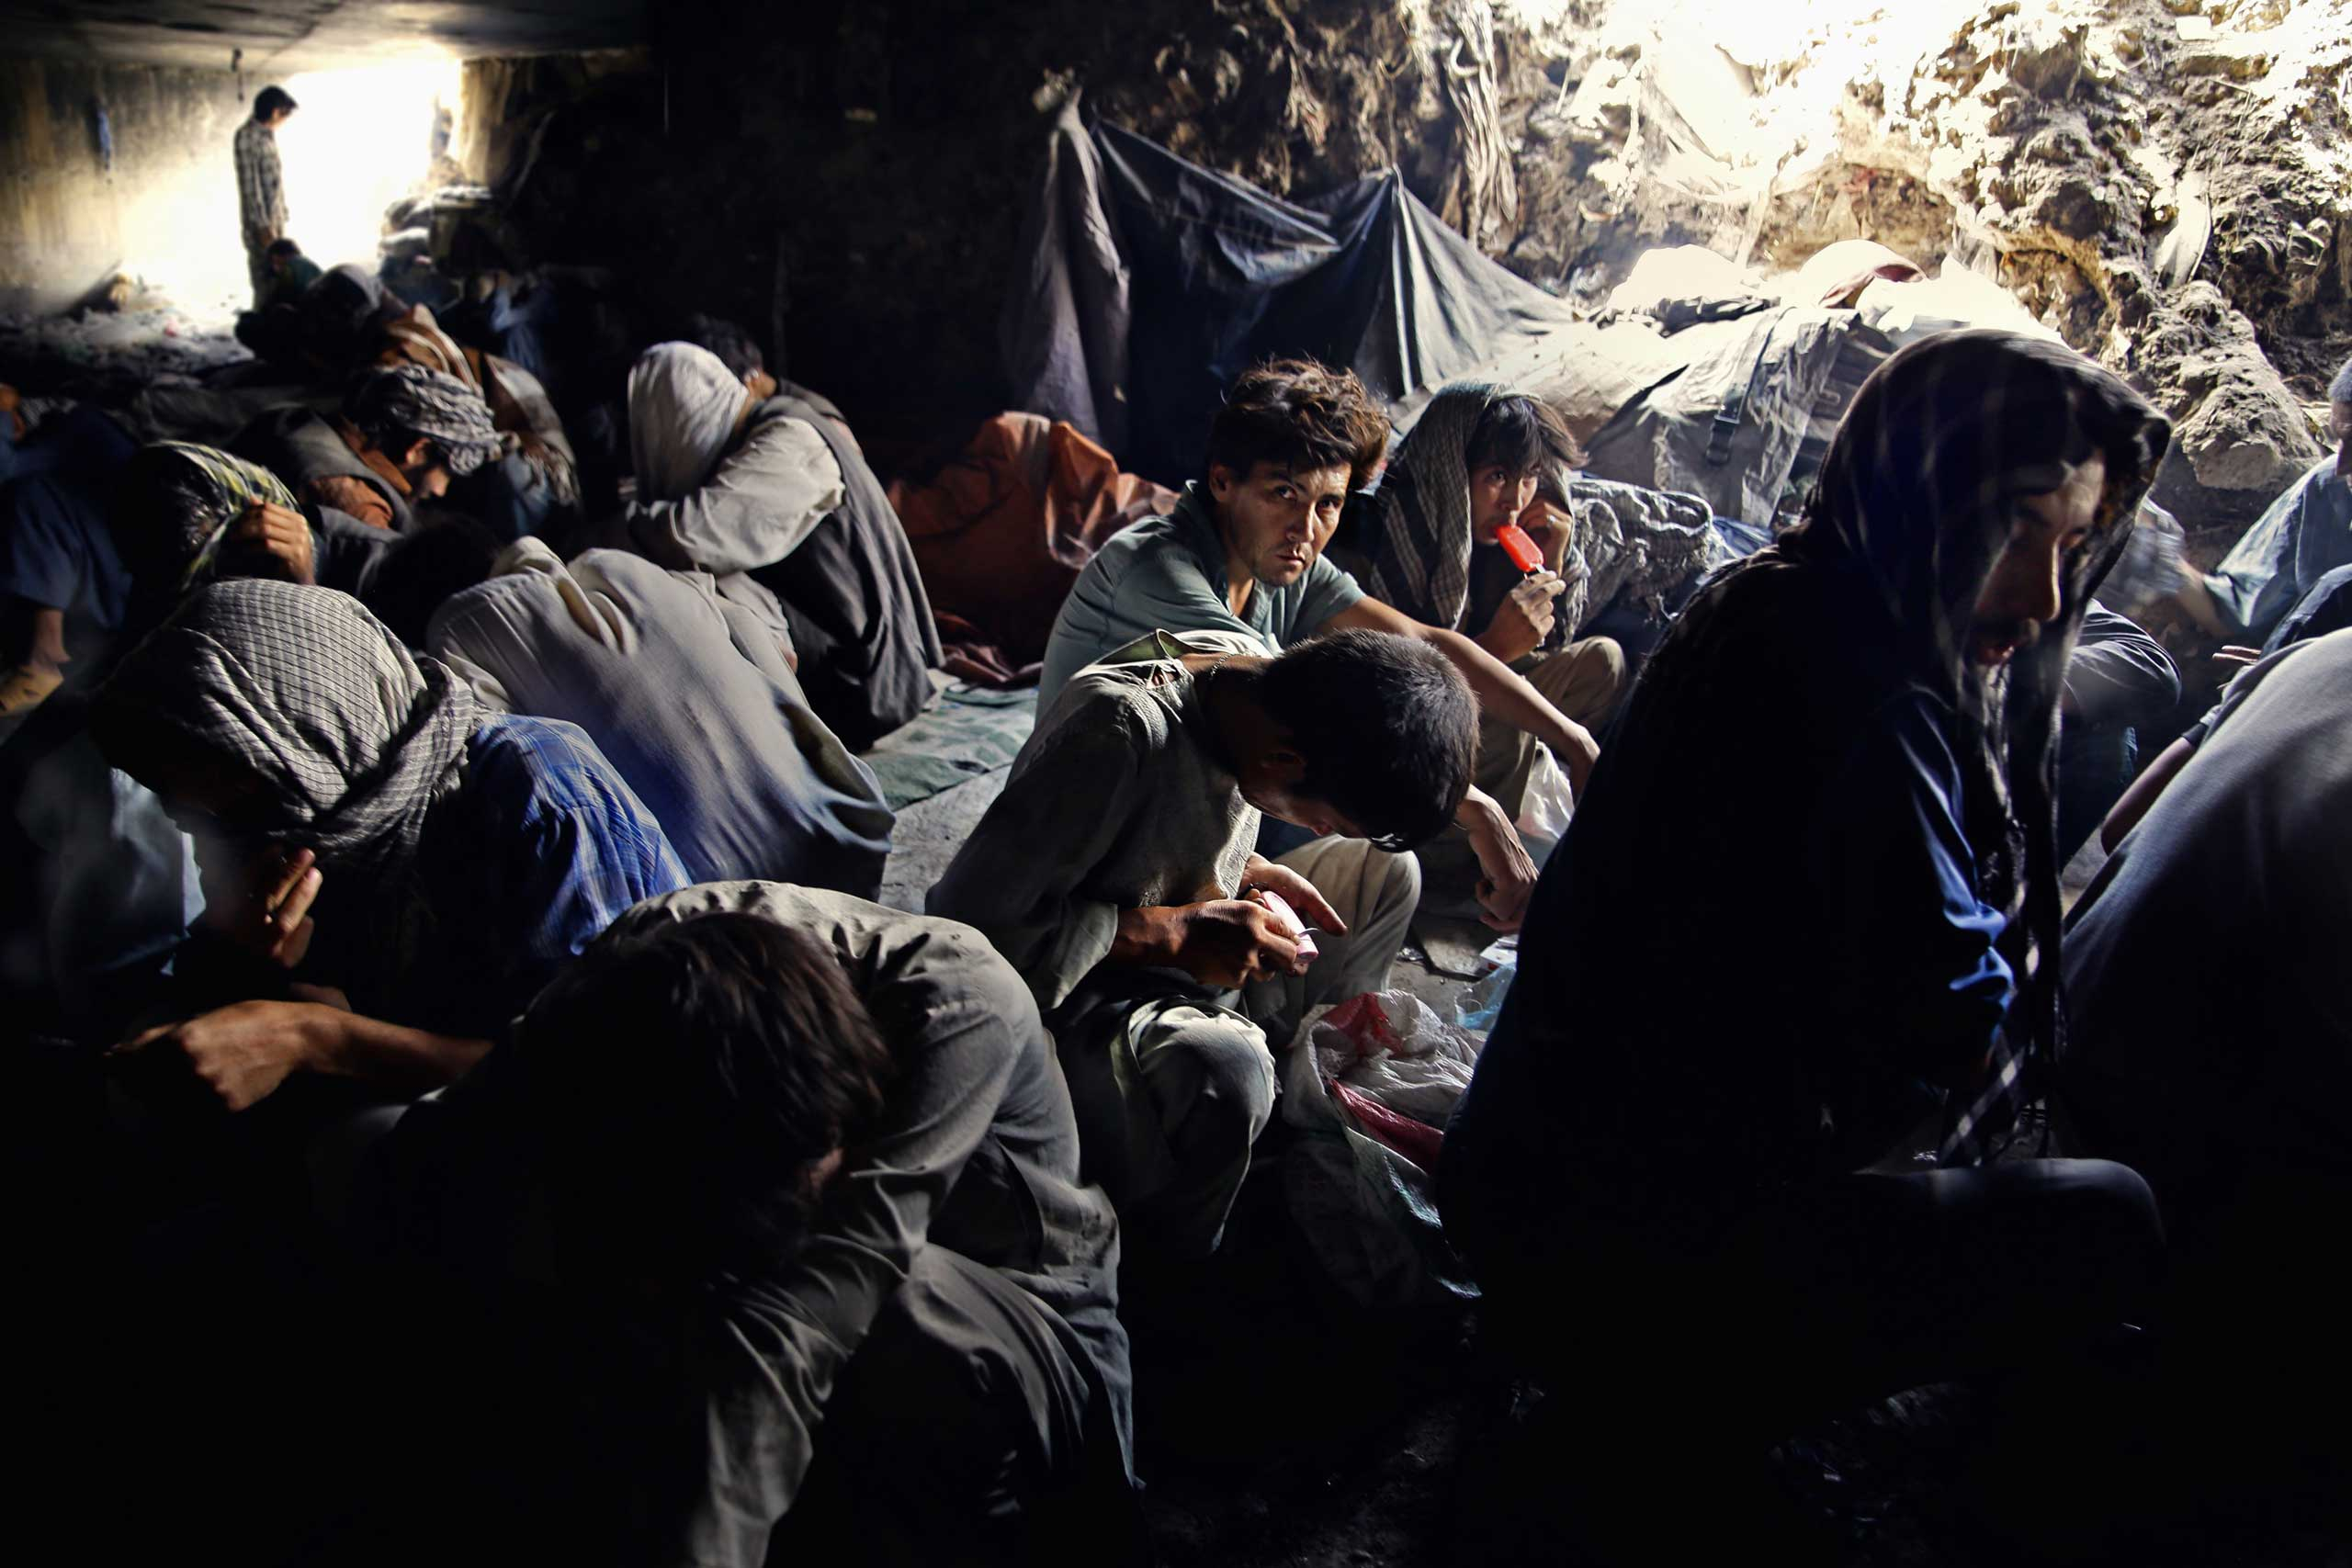 Addicts under the Pul-e Sukhta bridge sheltering from the burning summer sun above on Aug. 26, 2014.